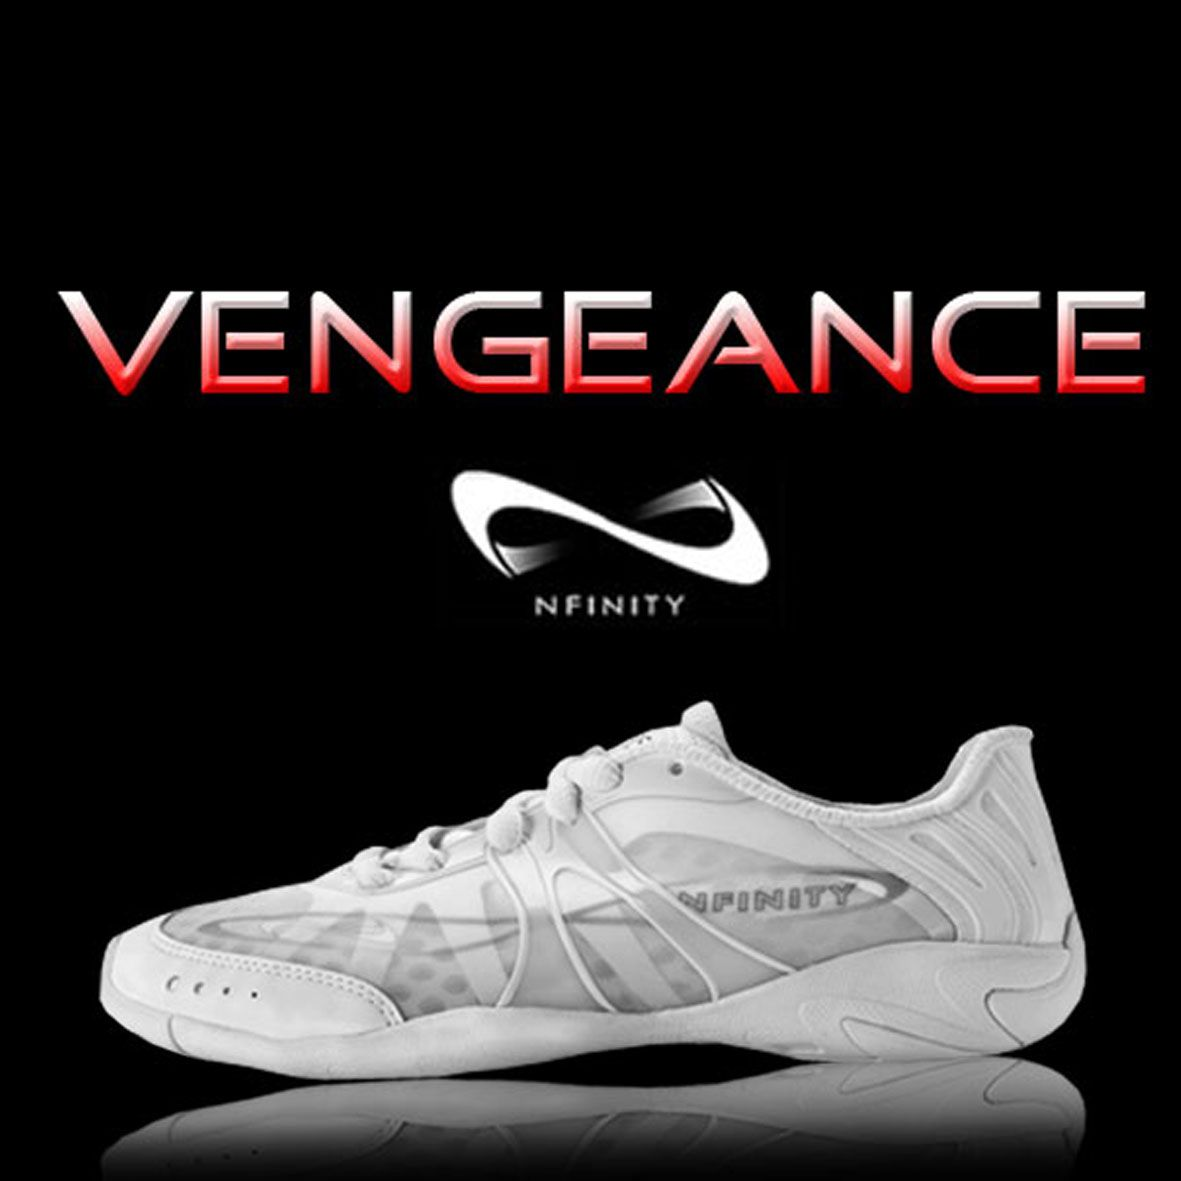 nfinity vengeance cheer shoes i seriously want a pair of